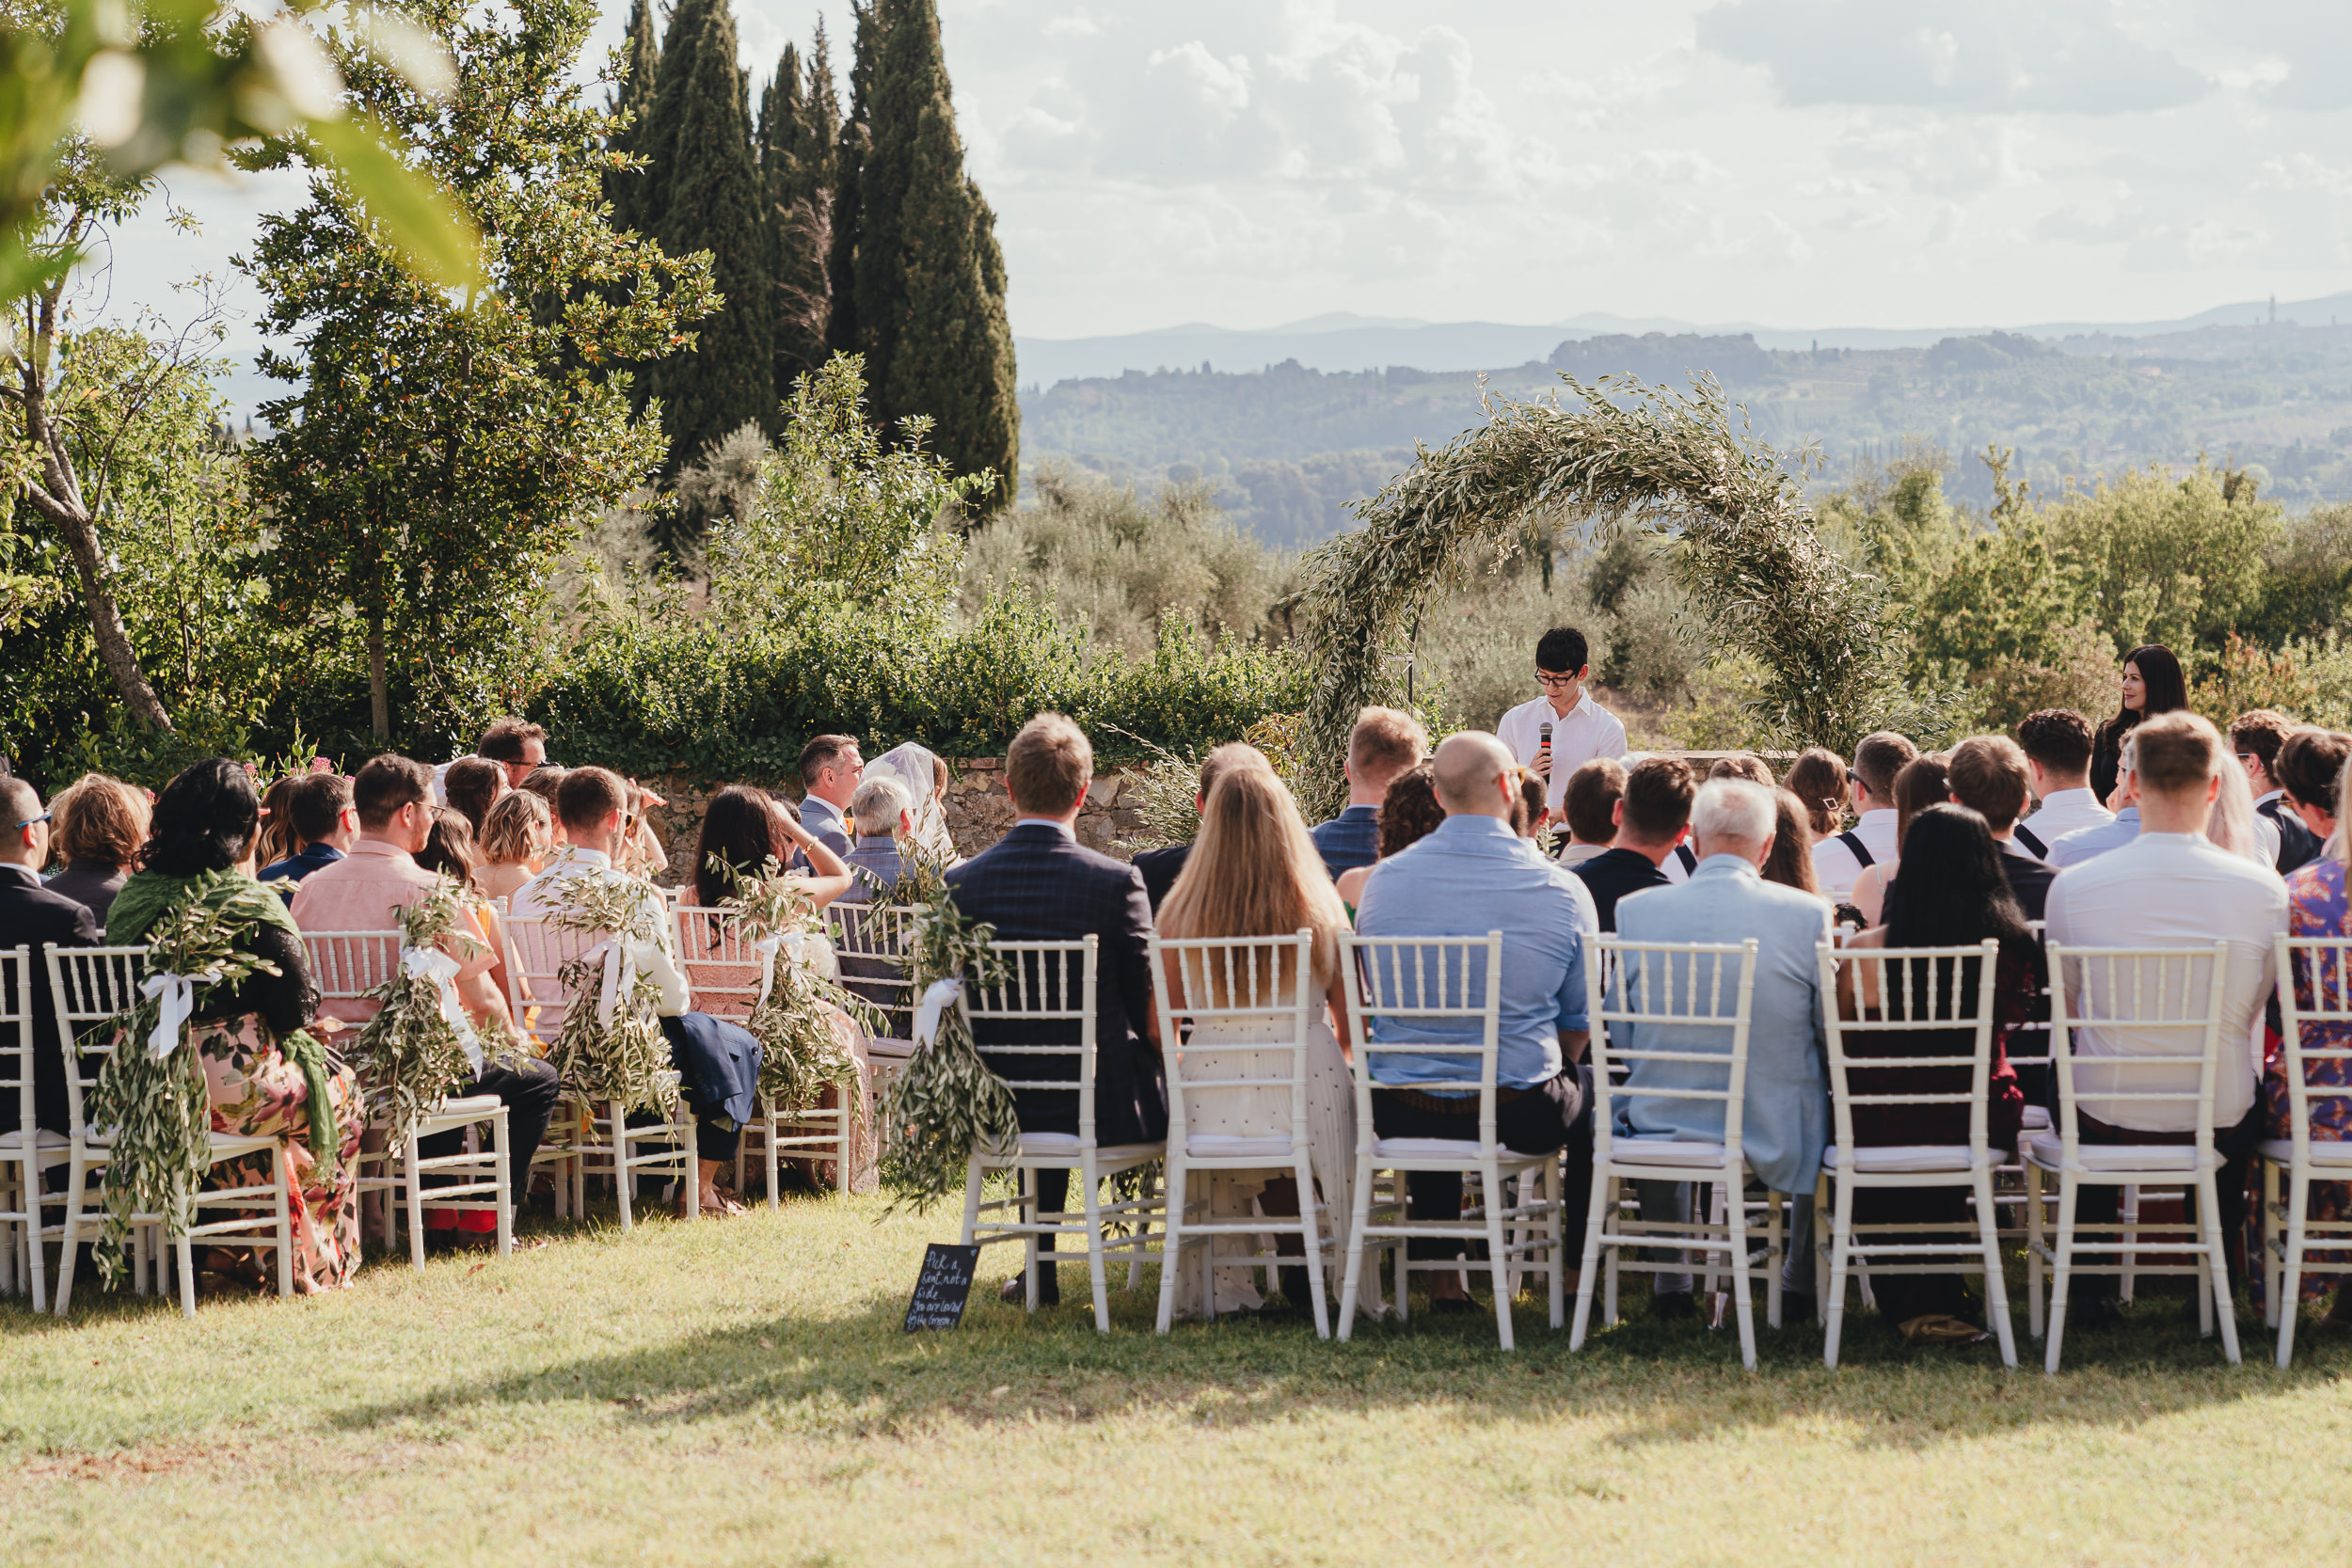 Tuscan Villa Wedding - The Wedding Ceremony in the garden of Villa Catignano